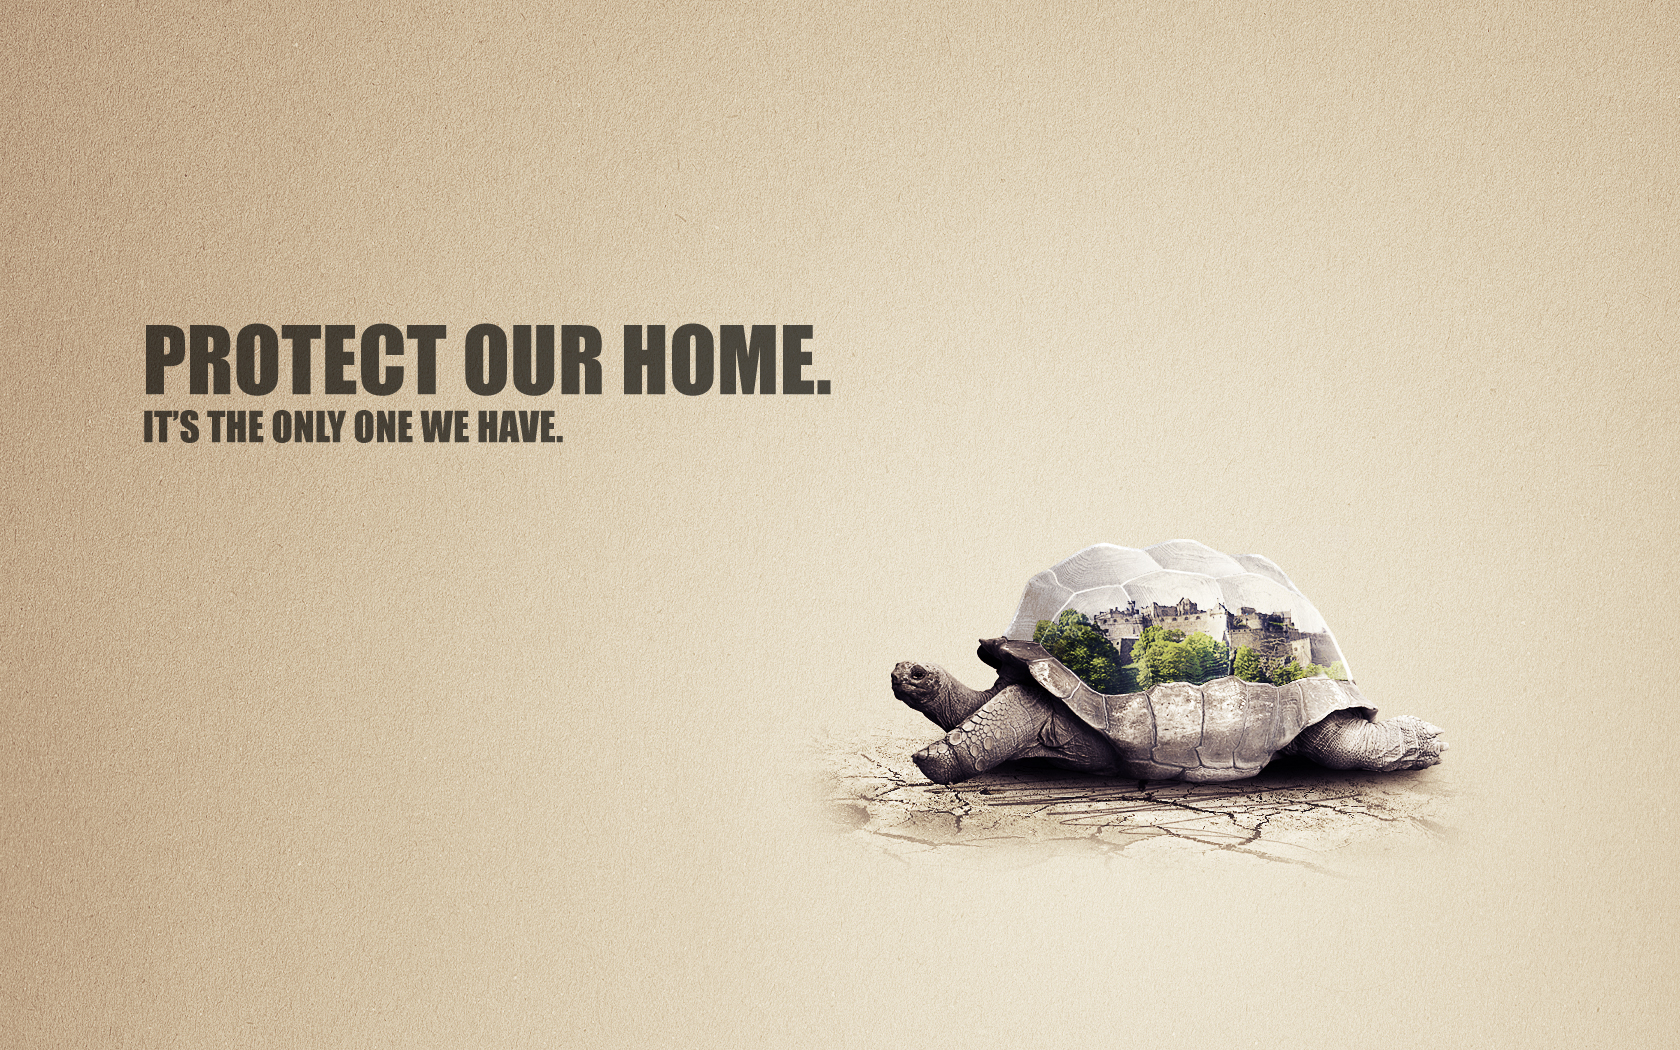 Design process creating an eco friendly concept design in photoshop first baditri Gallery